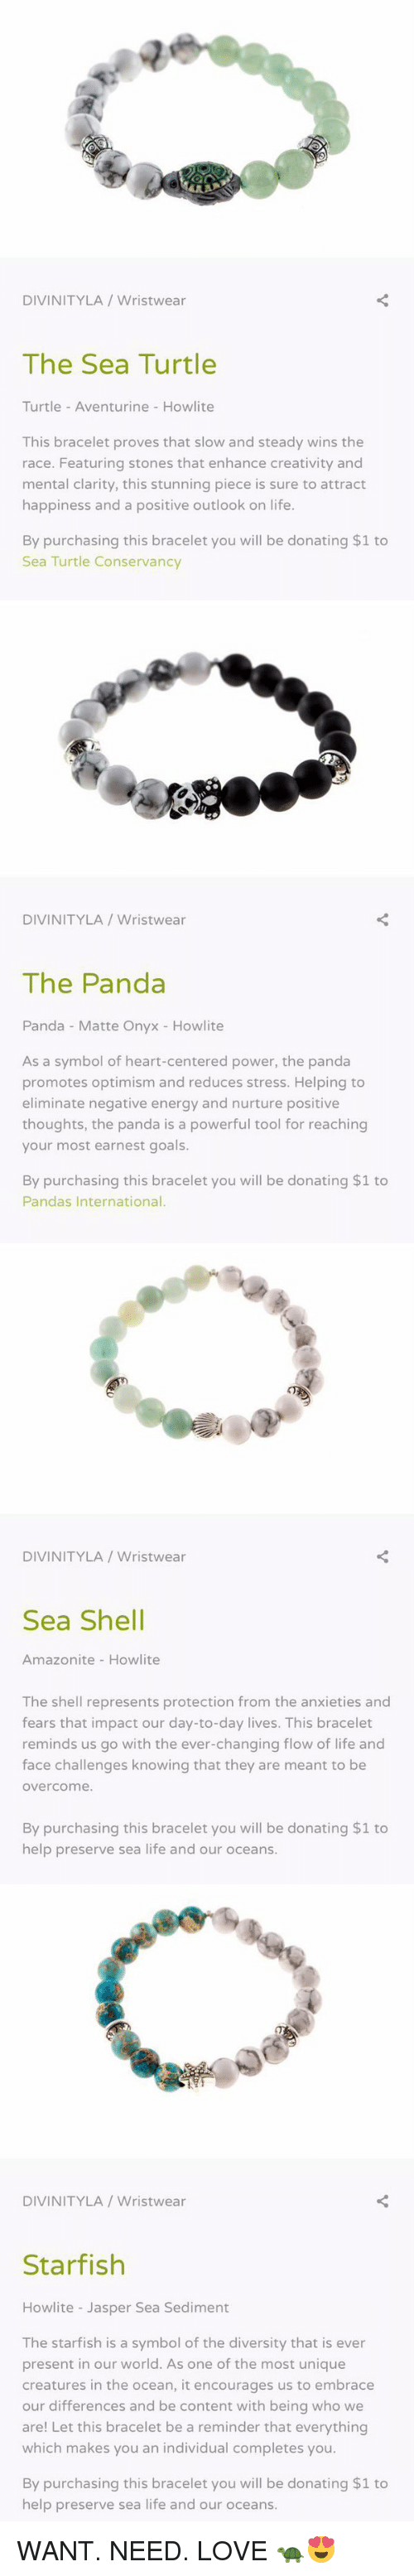 Turtle Turtle: DIVINITY LA Wristwear  The Sea Turtle  Turtle Aventurine Howlite  This bracelet proves that slow and steady wins the  race. Featuring stones that enhance creativity and  mental clarity, this stunning piece is sure to attract  happiness and a positive outlook on life.  By purchasing this bracelet you will be donating $1 to  Sea Turtle Conservancy   DIVINITY LA Wristwear  The Panda  Panda Matte Onyx Howlite  As a symbol of heart-centered power, the panda  promotes optimism and reduces stress. Helping to  eliminate negative energy and nurture positive  thoughts, the panda is a powerful tool for reaching  your most earnest goals.  By purchasing this bracelet you will be donating $1 to  Pandas International.   DIVINITYLA Wristwear  Sea Shell  Amazonite How lite  The shell represents protection from the anxieties and  fears that impact our day-to-day lives. This bracelet  reminds us go with the ever-changing flow of life and  face challenges knowing that they are meant to be  overcome.  By purchasing this bracelet you will be donating $1 to  help preserve sea life and our oceans.   DIVINITYLA Wristwear  Starfish  Howlite Jasper Sea Sediment  The starfish is a symbol of the diversity that is ever  present in our world. As one of the most unique  creatures in the ocean, it encourages us to embrace  our differences and be content with being who we  are! Let this bracelet be a reminder that everything  which makes you an individual completes you.  By purchasing this bracelet you will be donating $1 to  help preserve sea life and our oceans. WANT. NEED. LOVE 🐢😍